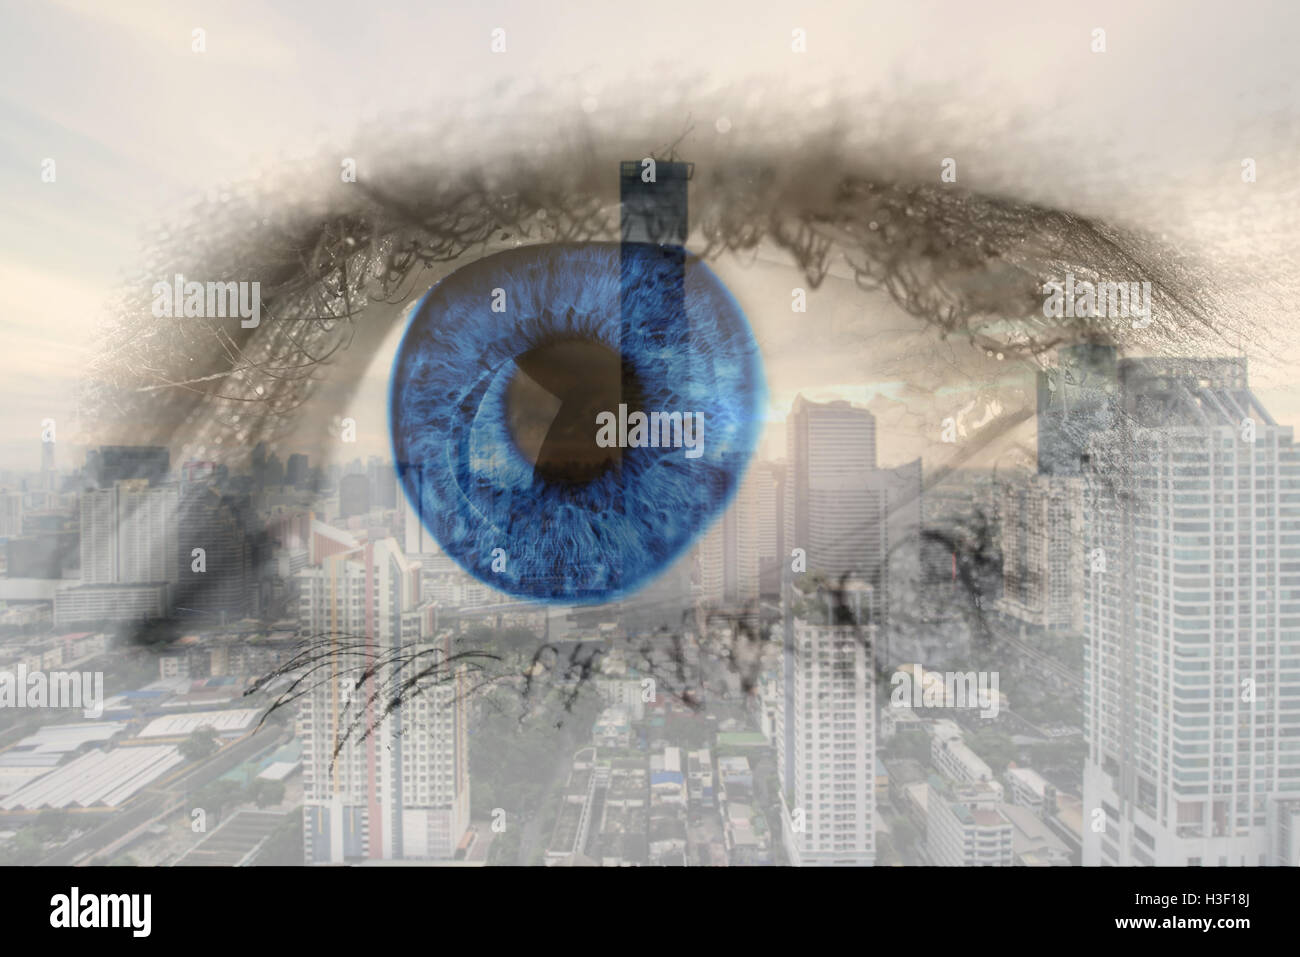 Double exposure image of human eye with business center district Bangkok city. Business future concept. - Stock Image